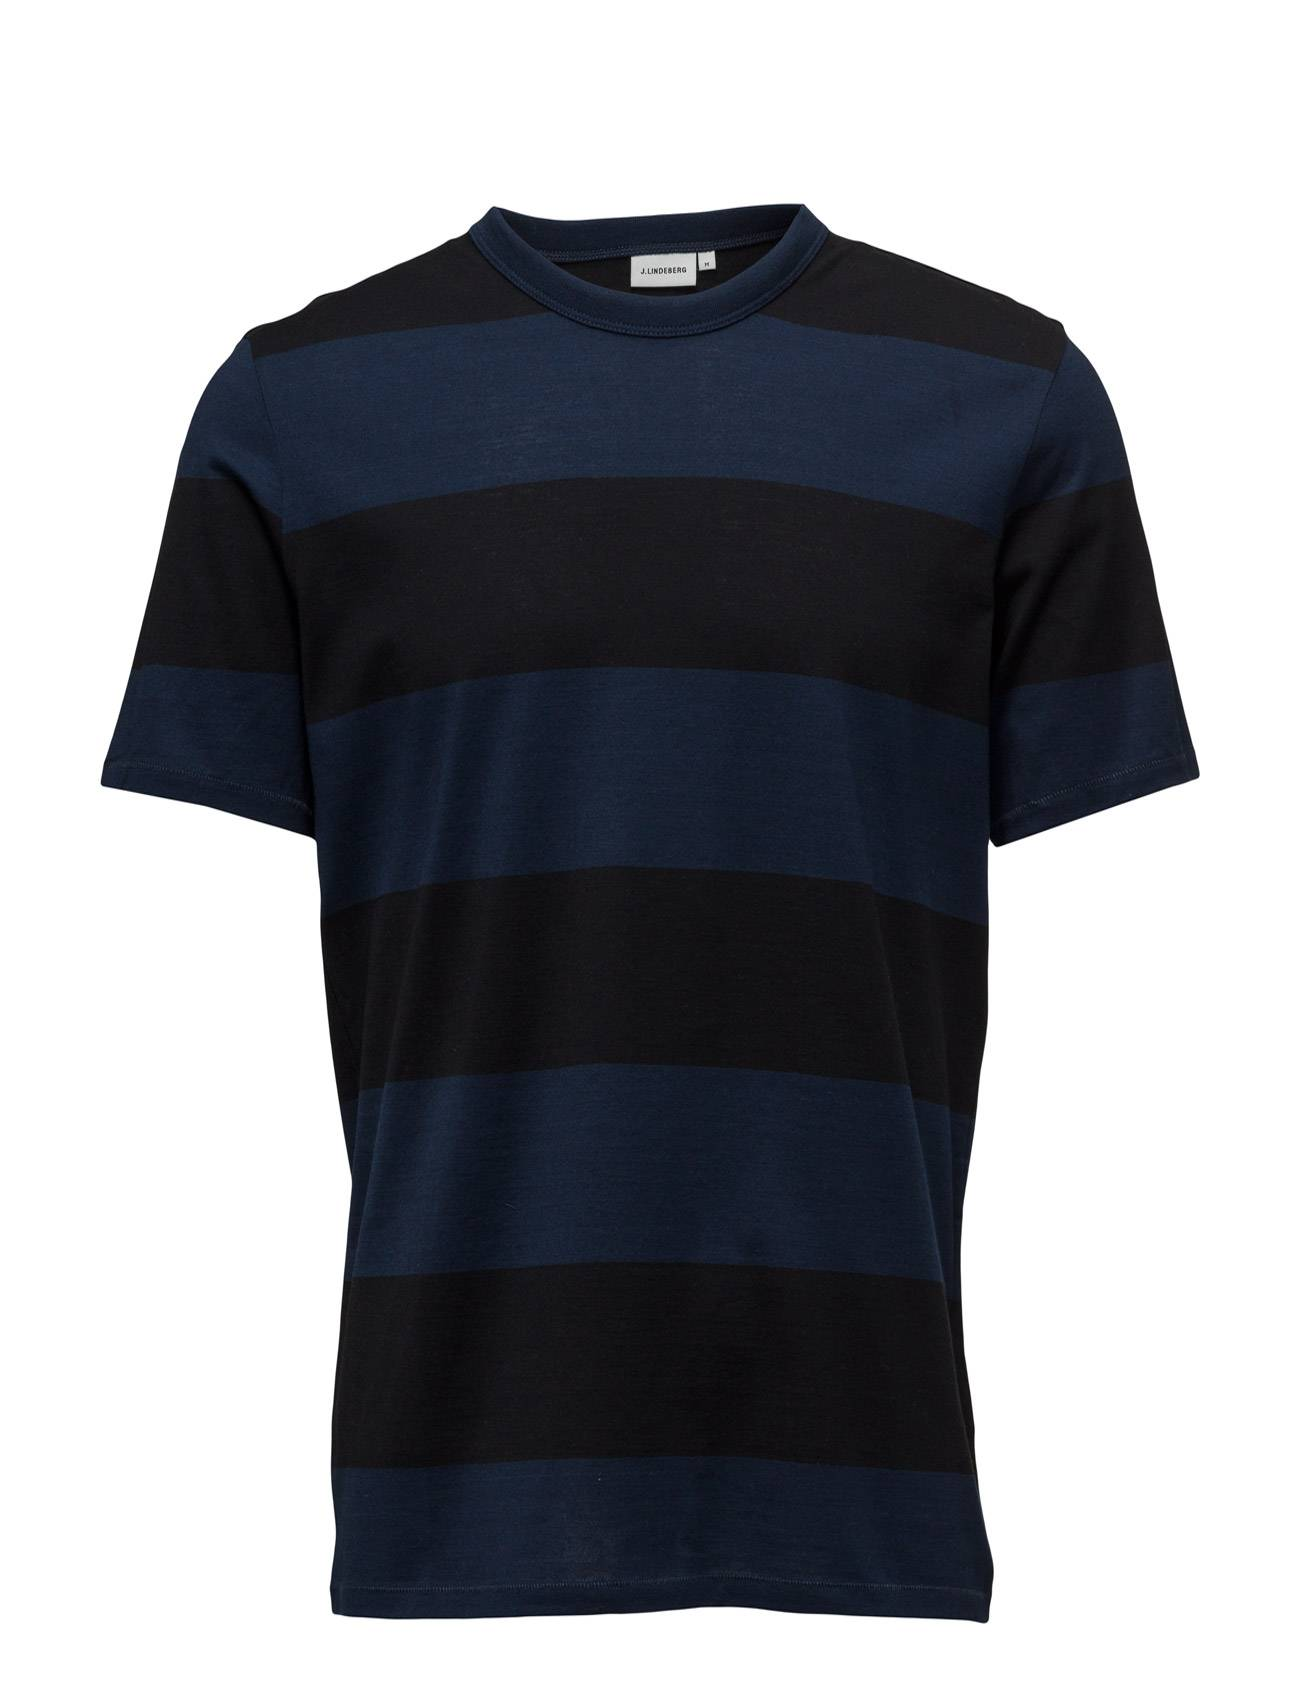 J. Lindeberg Leonard Mercerised Stripe